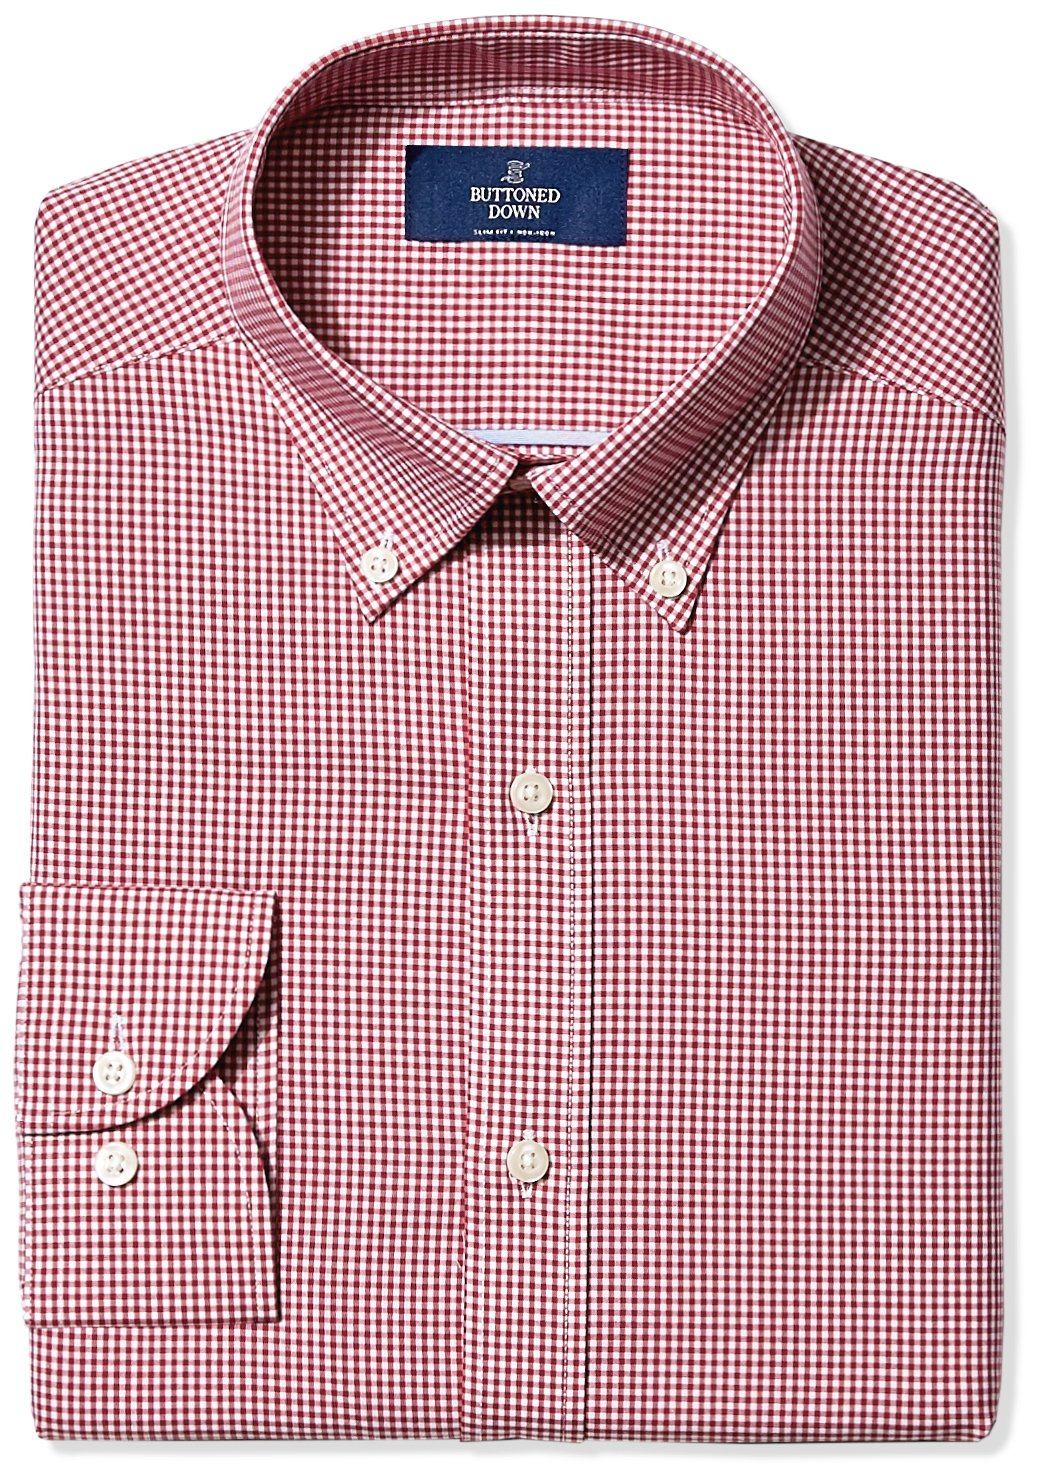 Buttoned Down Men's Slim Fit Button-Collar Non-Iron Dress Shirt, Burgundy Small Gingham, 15.5'' Neck 34'' Sleeve